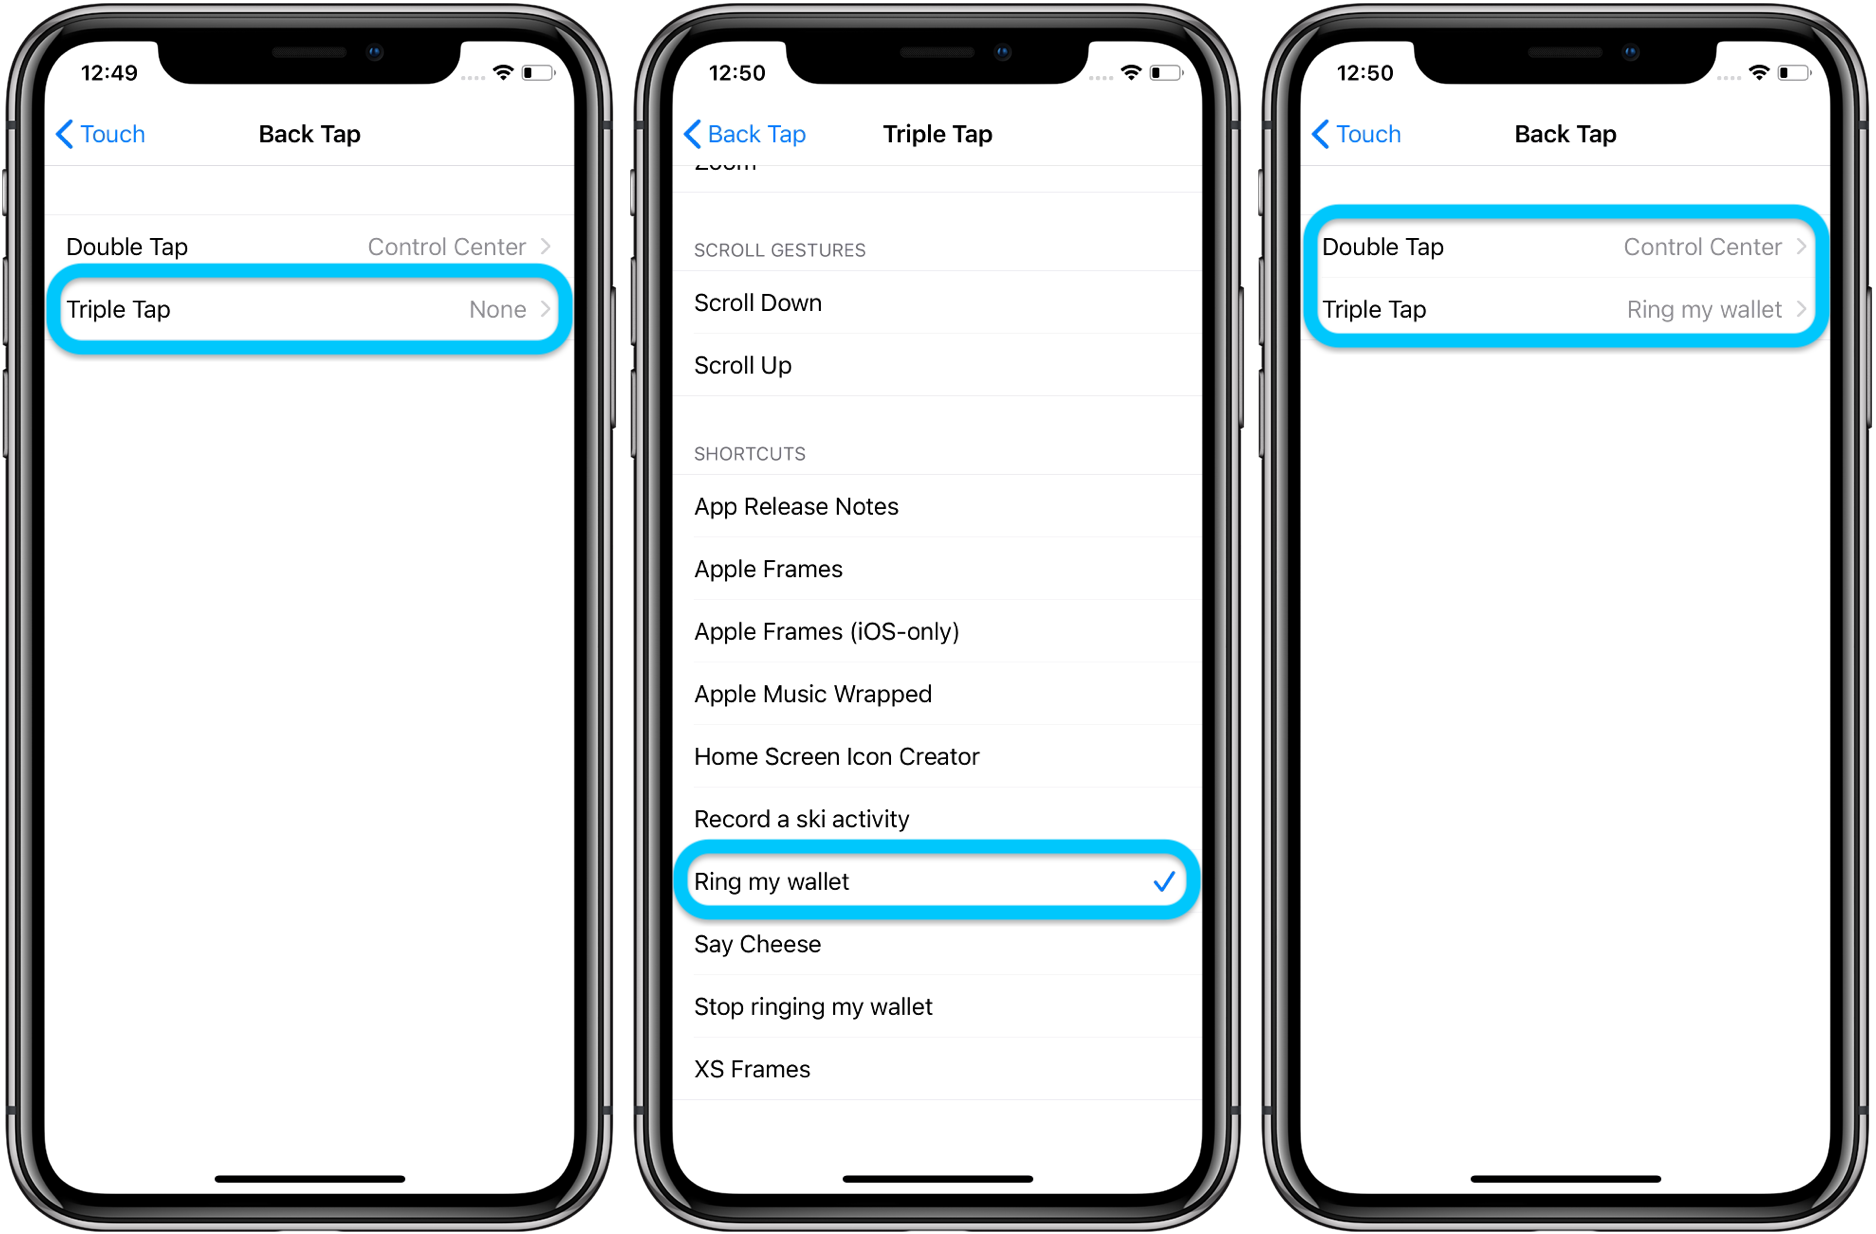 How to use iPhone Back Tap custom controls walkthrough 3